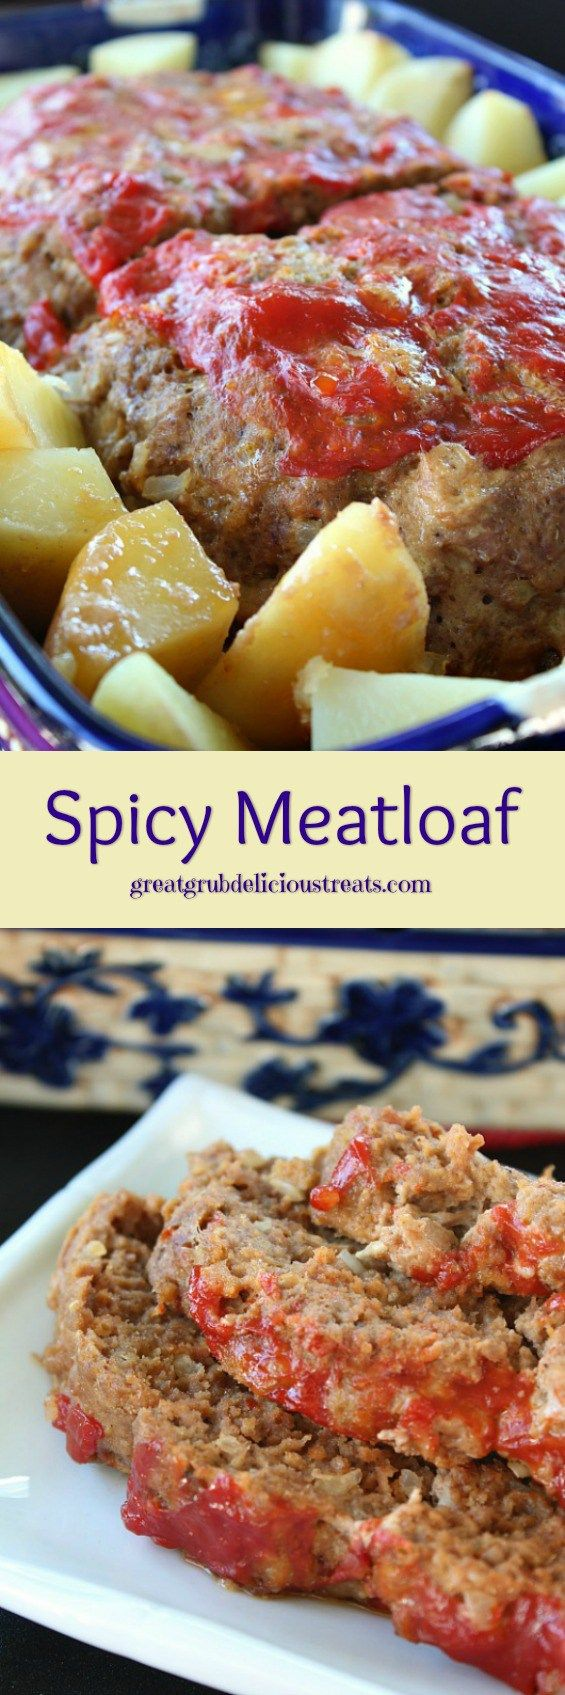 Spicy Meatloaf... this is the best meatloaf recipe ever, my family loved it so much they said this is the only one the ever want again...some even asked for the recipe!!